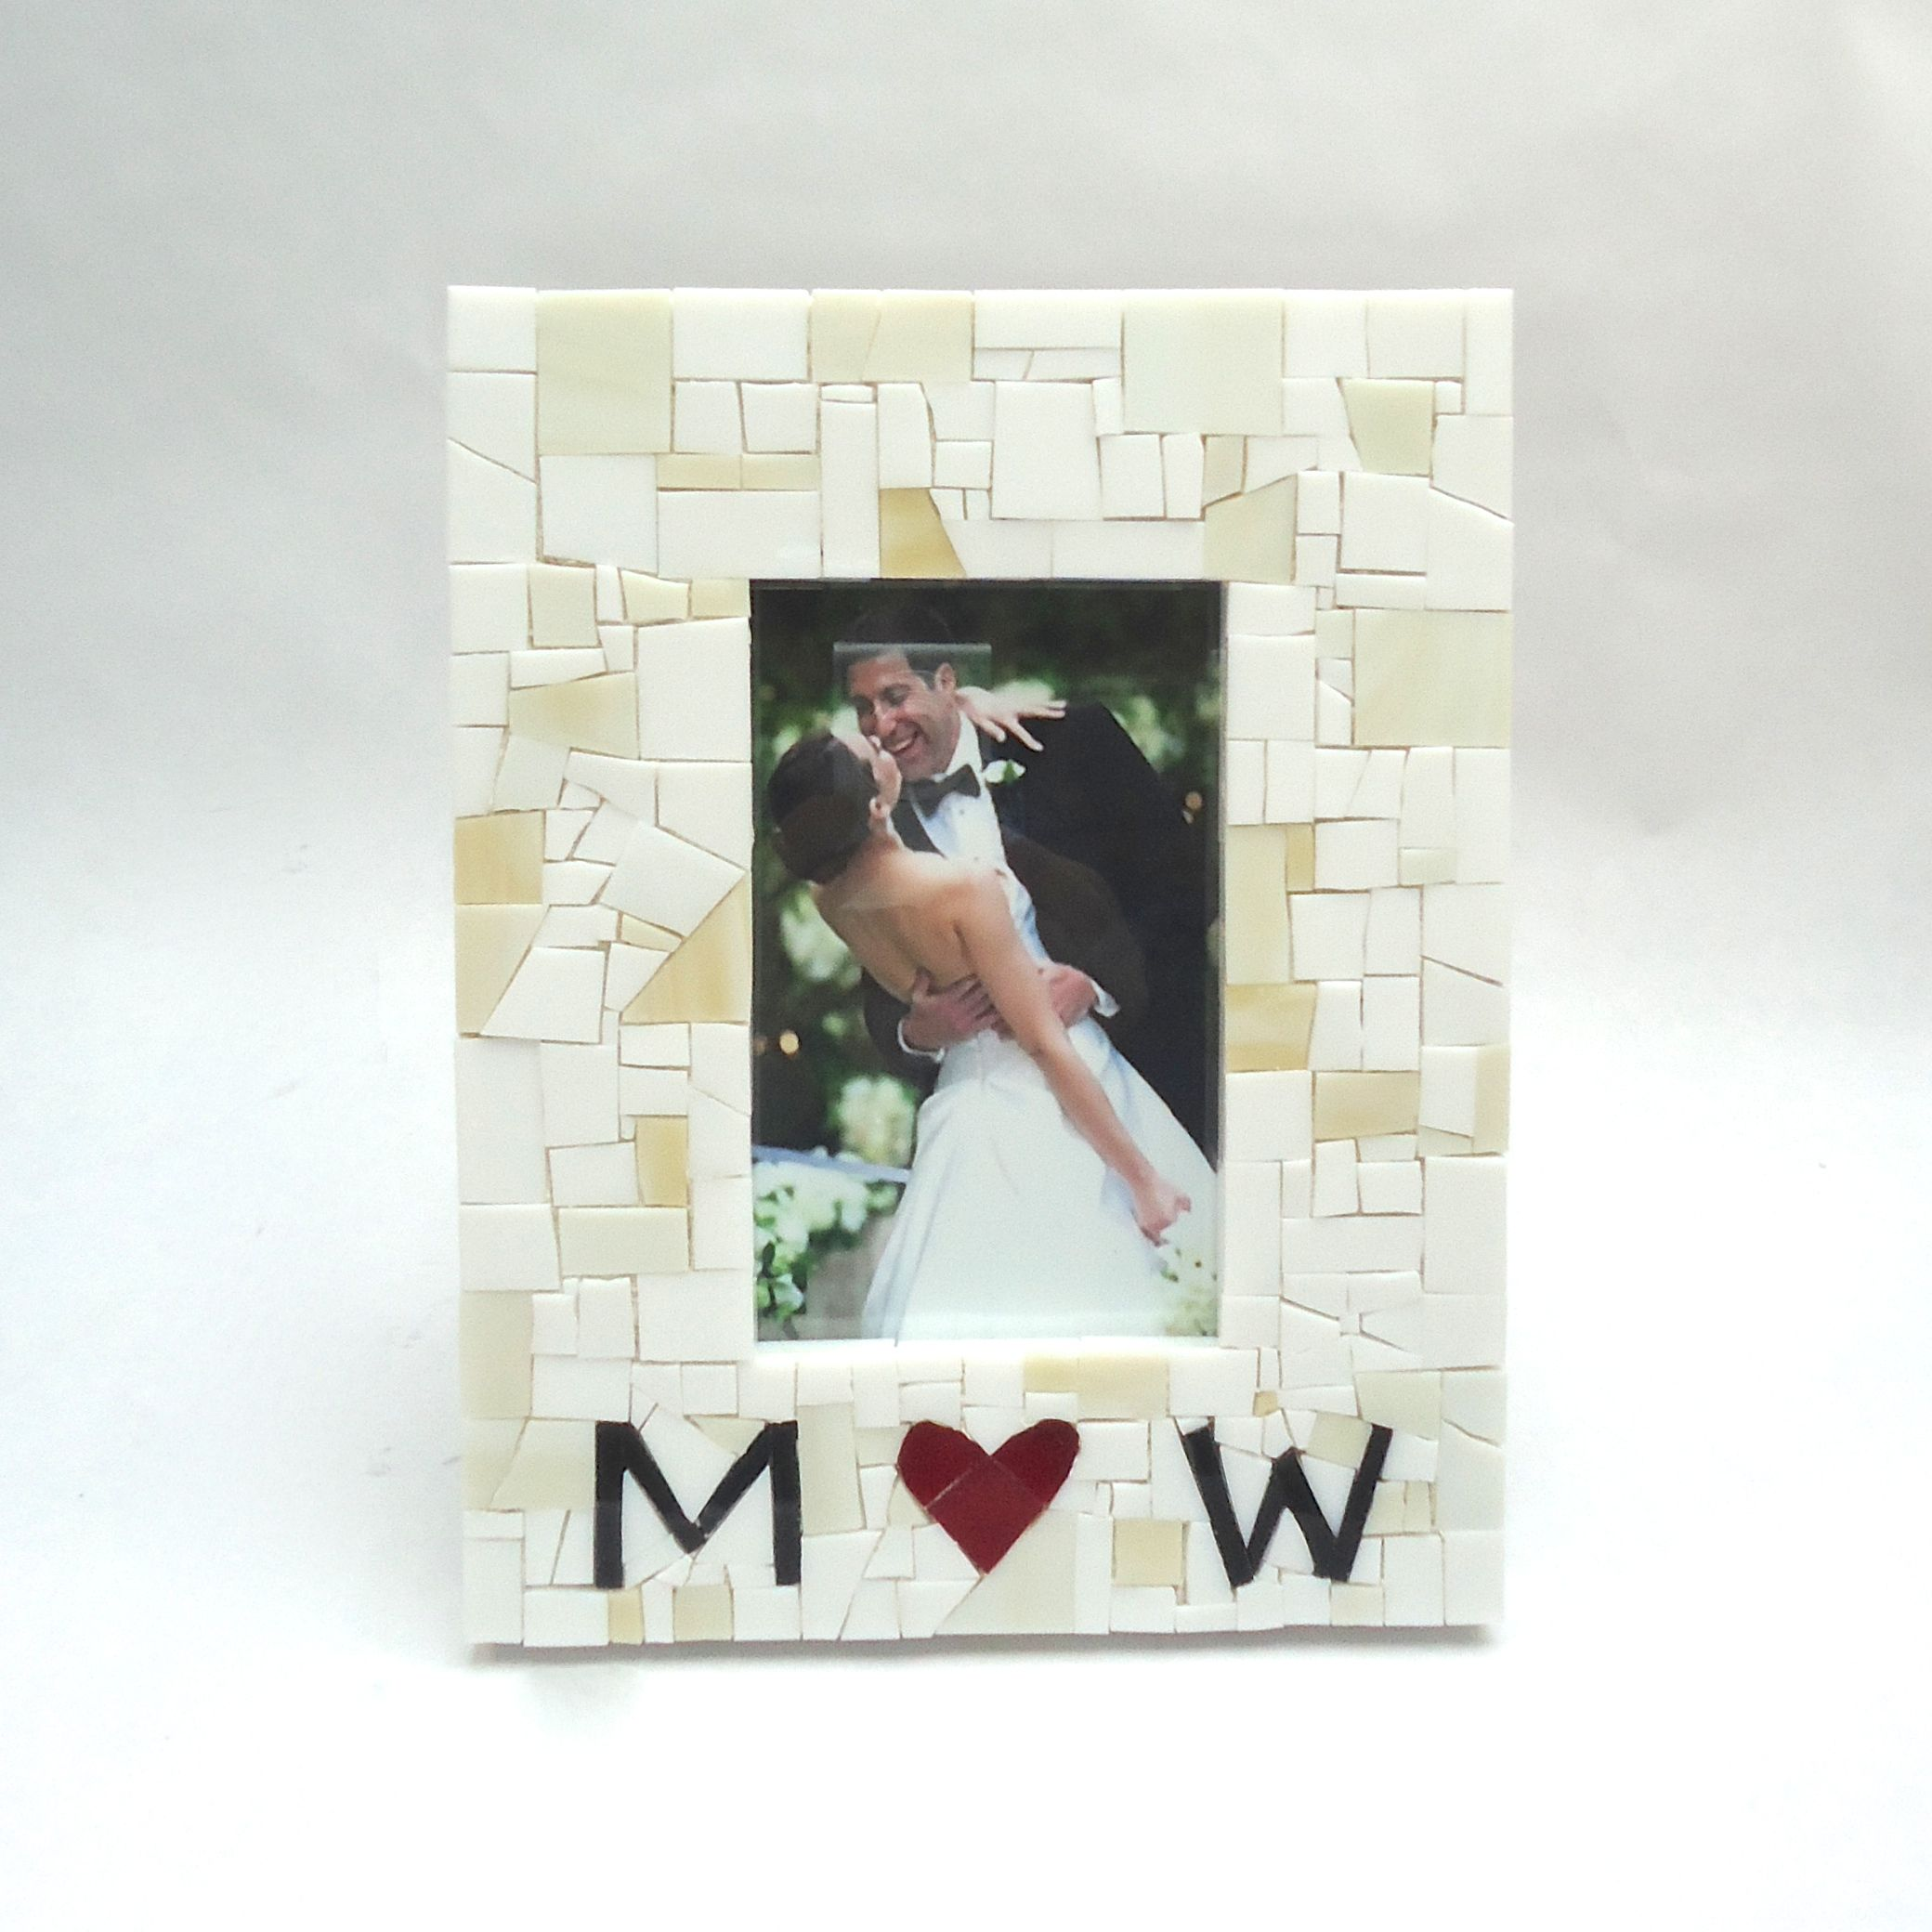 Buy a Custom Made Personalized Mosaic Wedding Picture Frame With ...